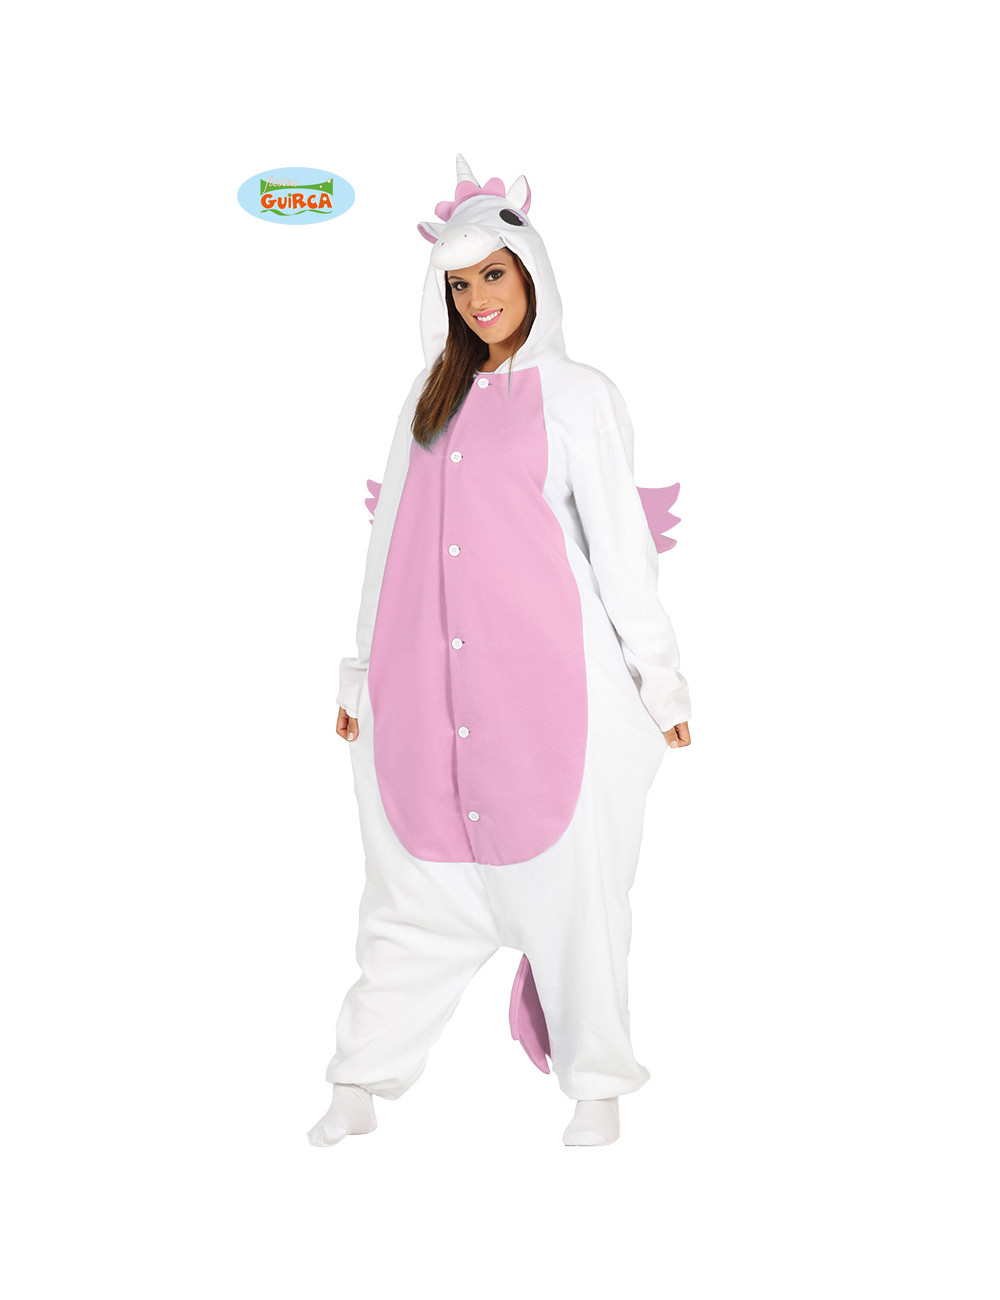 d guisement pyjama kigurumi licorne rose ou bleu pas cher. Black Bedroom Furniture Sets. Home Design Ideas